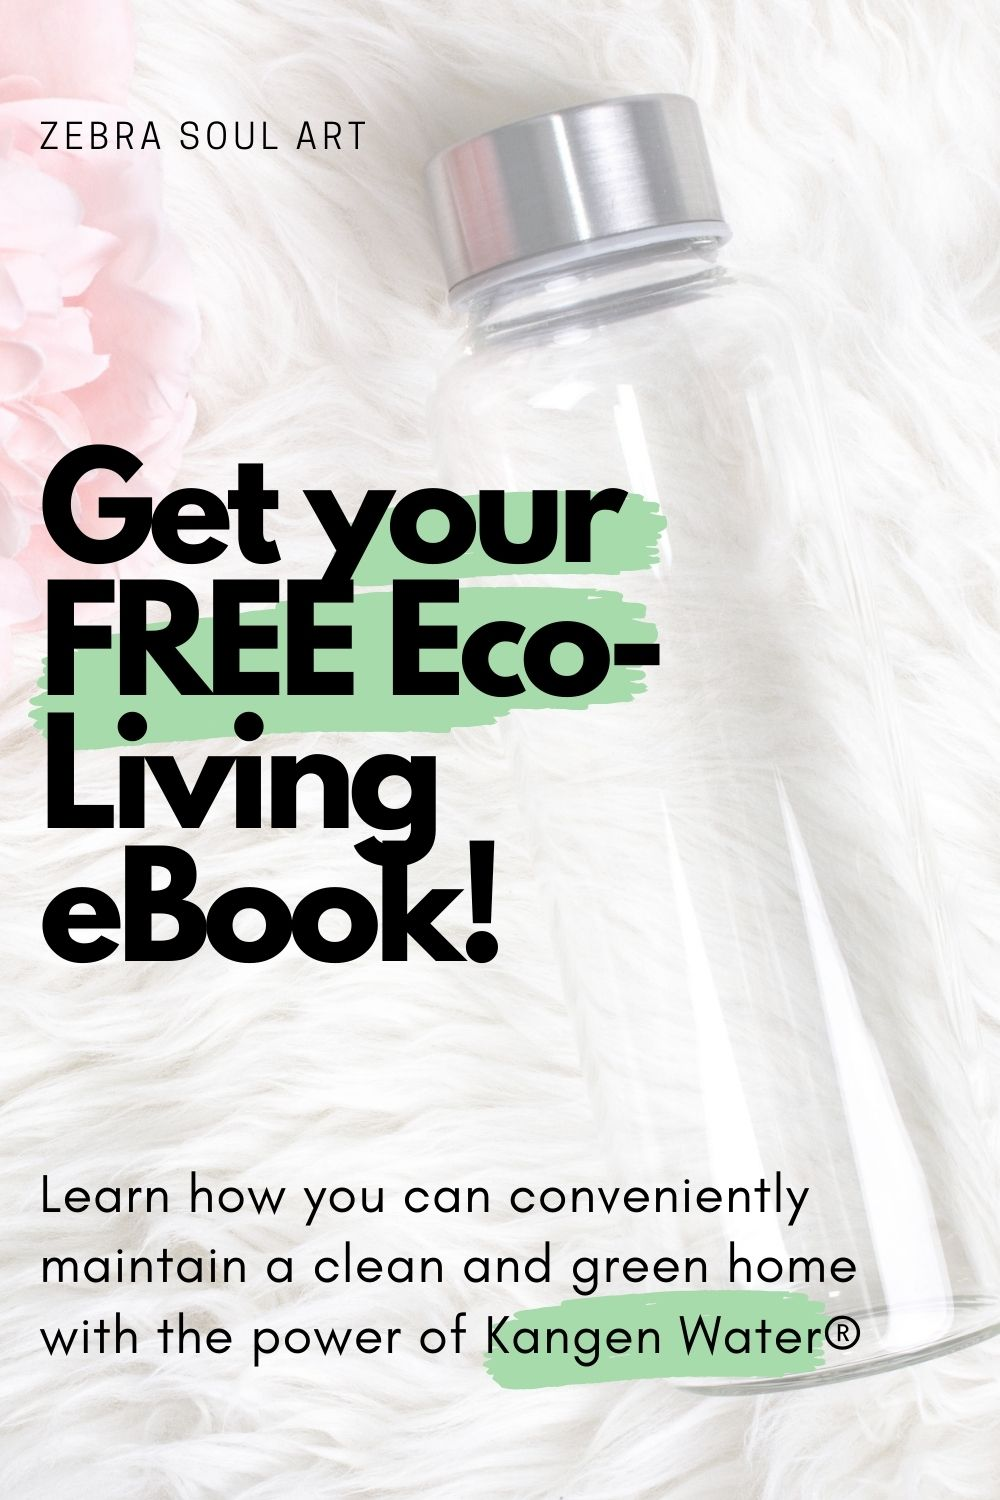 white water bottle on white linen and pink rose, text saying get your free eco living ebook, learn how to implement kangen water into your home, by zebra soul art